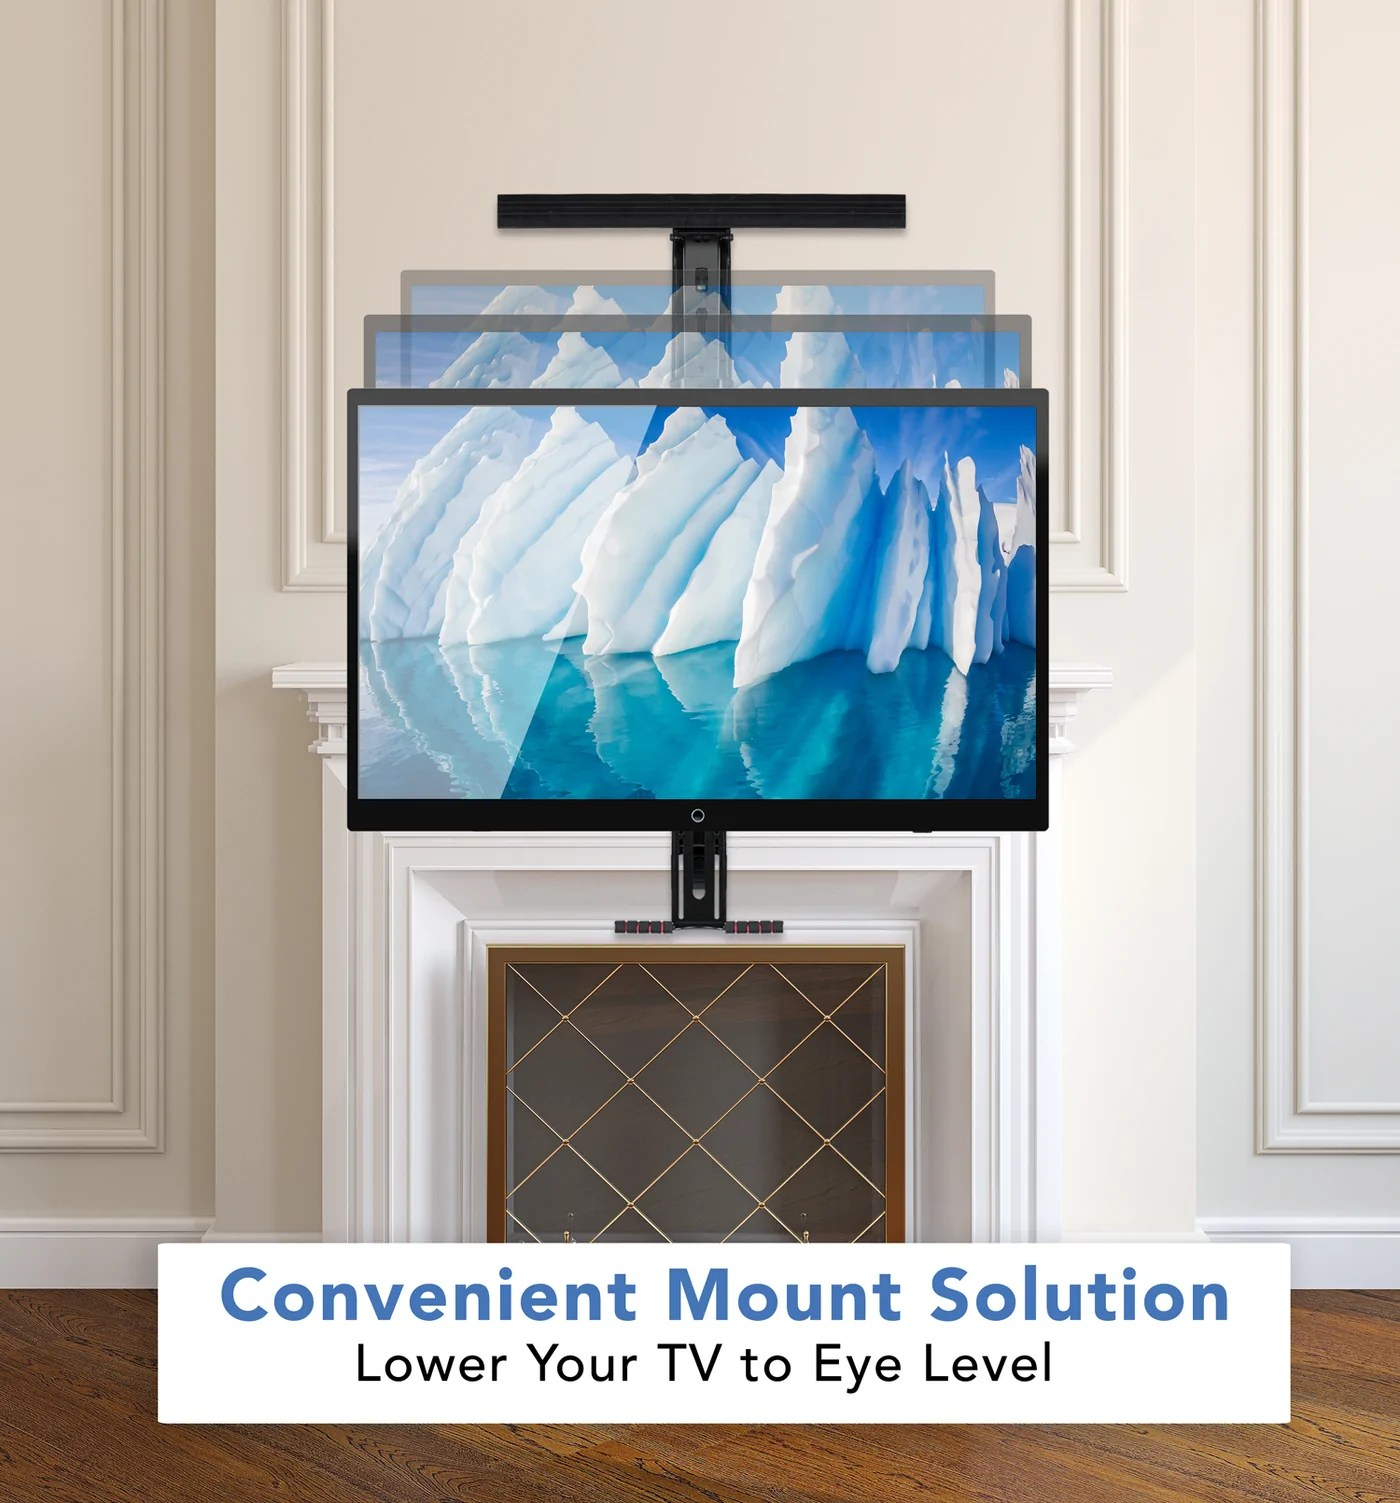 Fireplace Tv Mount Mount It Fireplace Tv Mount Heavy Duty Mantel Tv Mount Pull Down Mounting Bracket With Height Adjustment Fits 50 100 Inch Tvs Mi 373